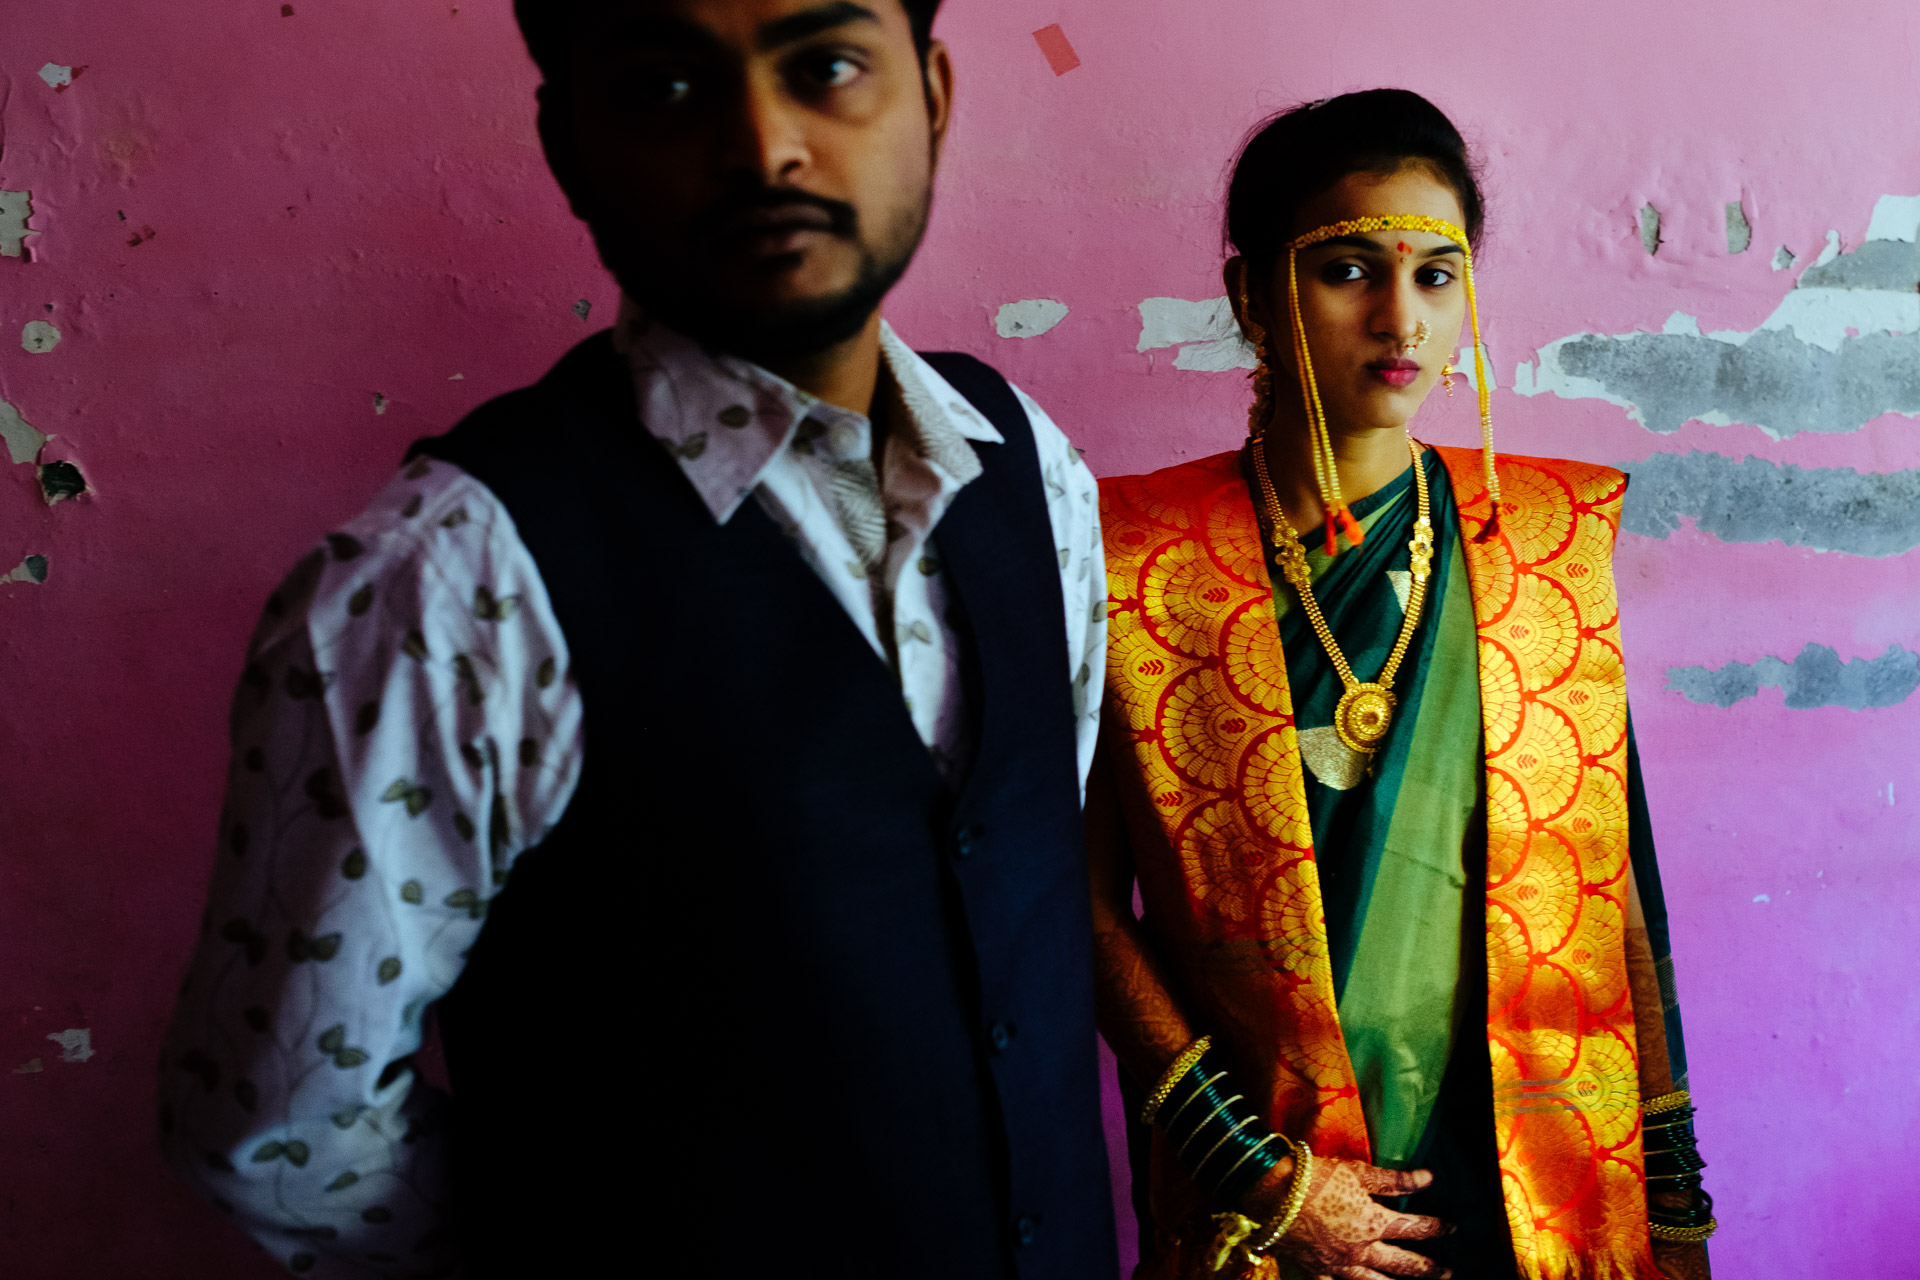 wedding_in_mumbai-18.jpg